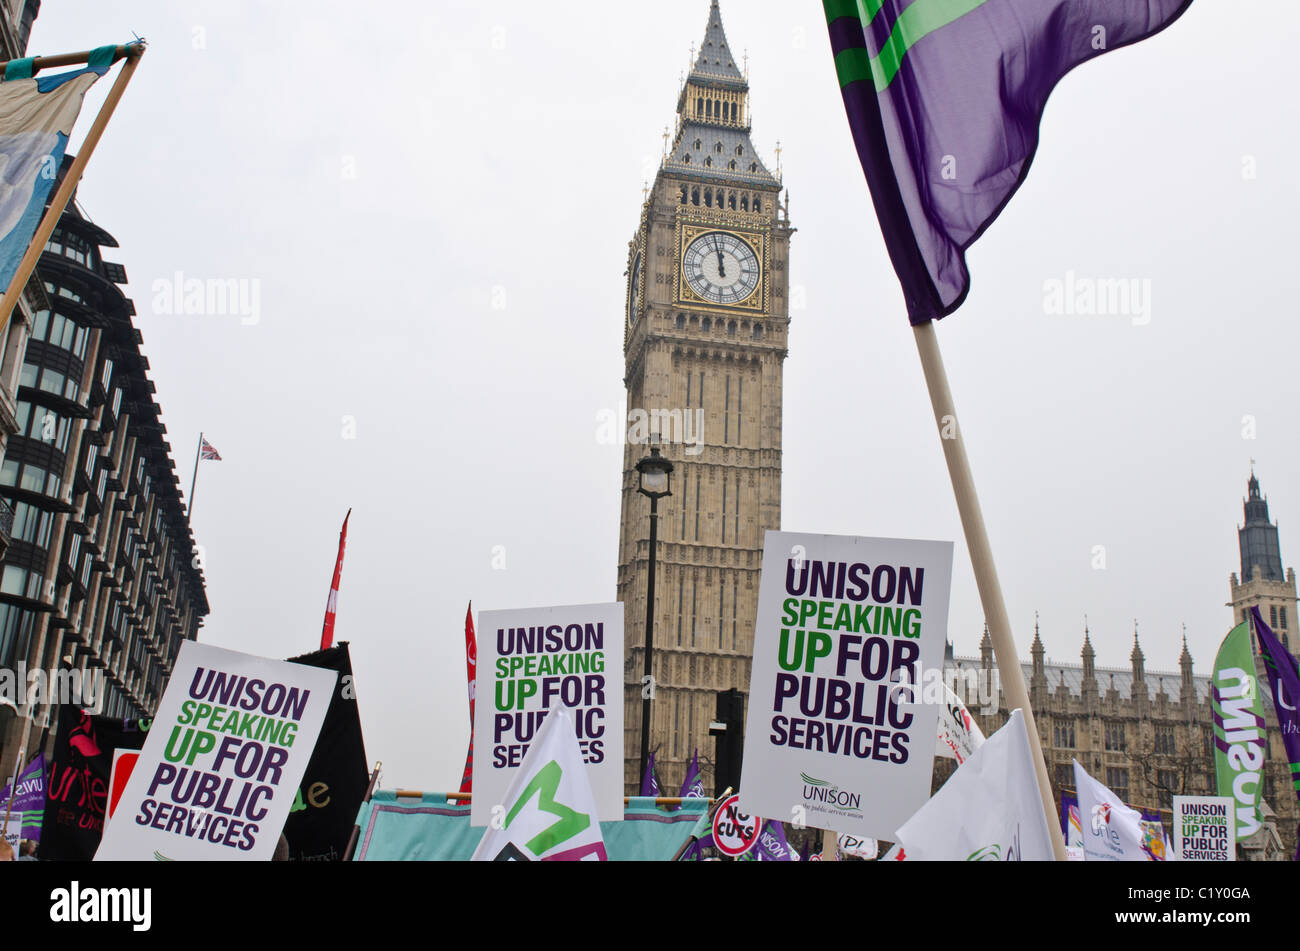 Unison Public Services union banners Parliament BIg Ben TUC march against Coalition Government Cuts 26th March 2011 - Stock Image